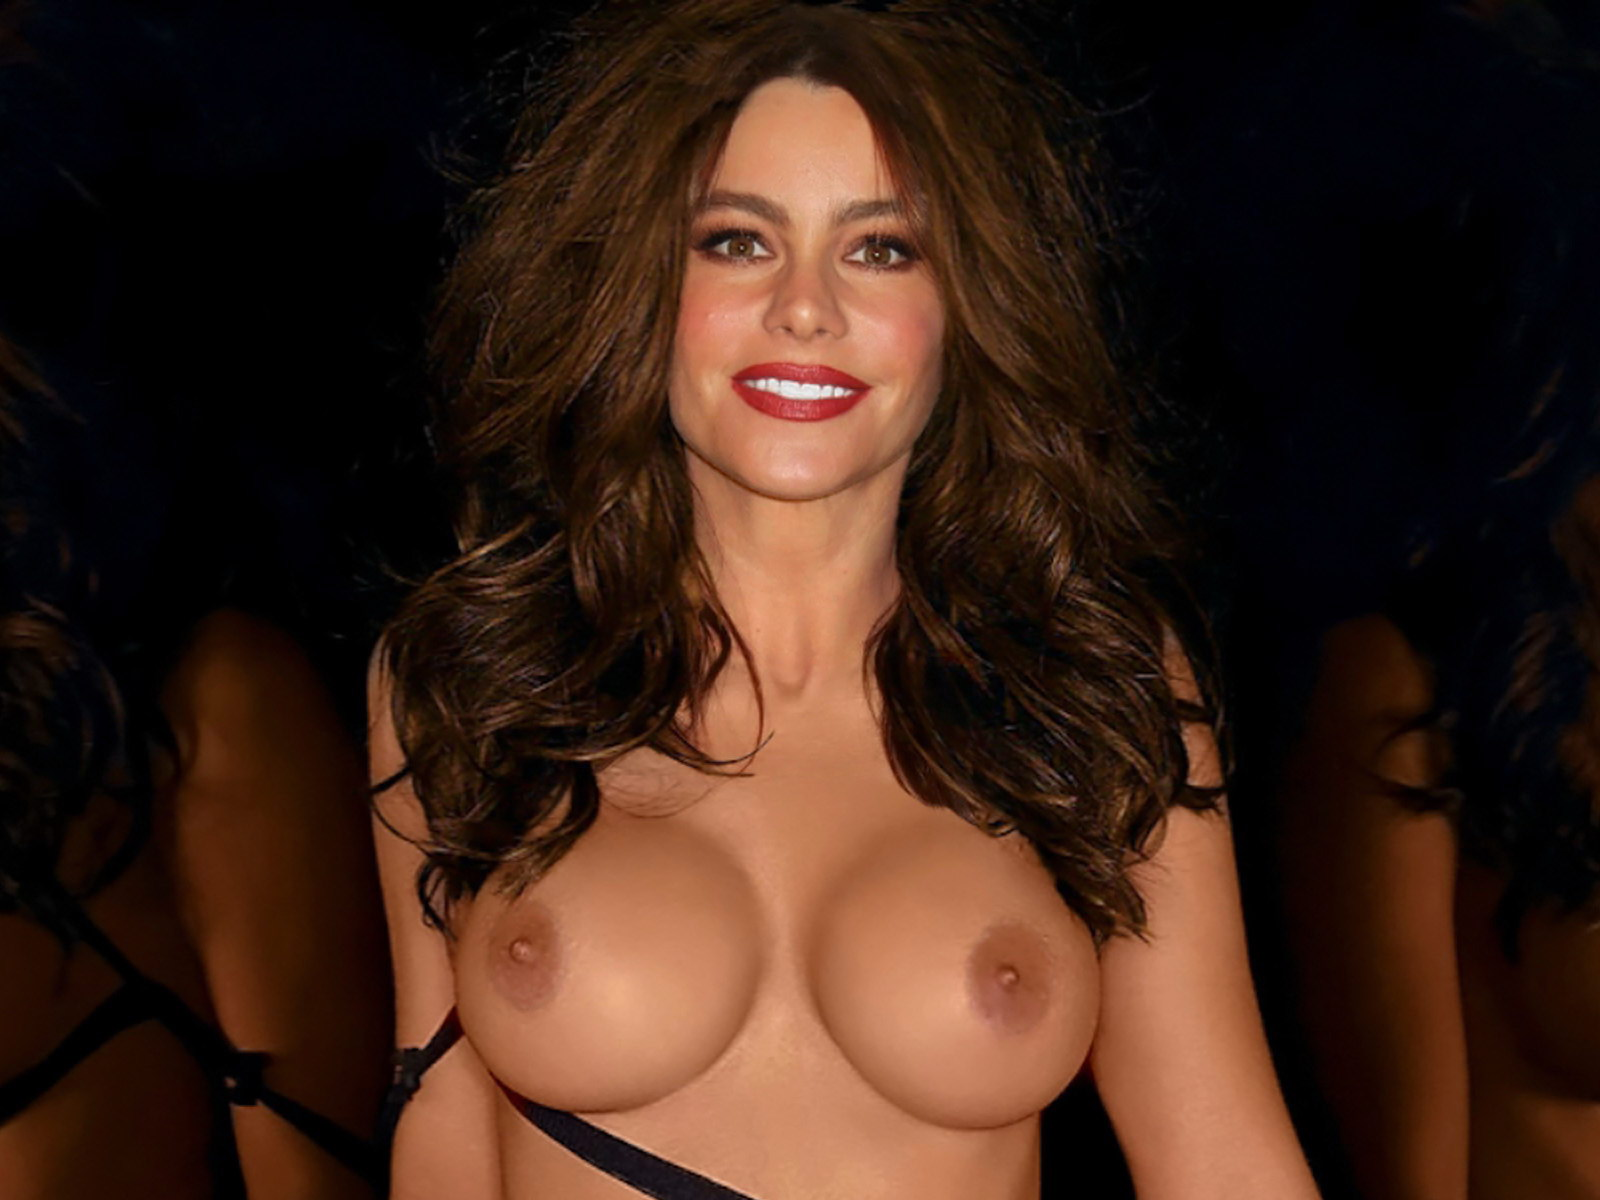 naked girl sofia vergara